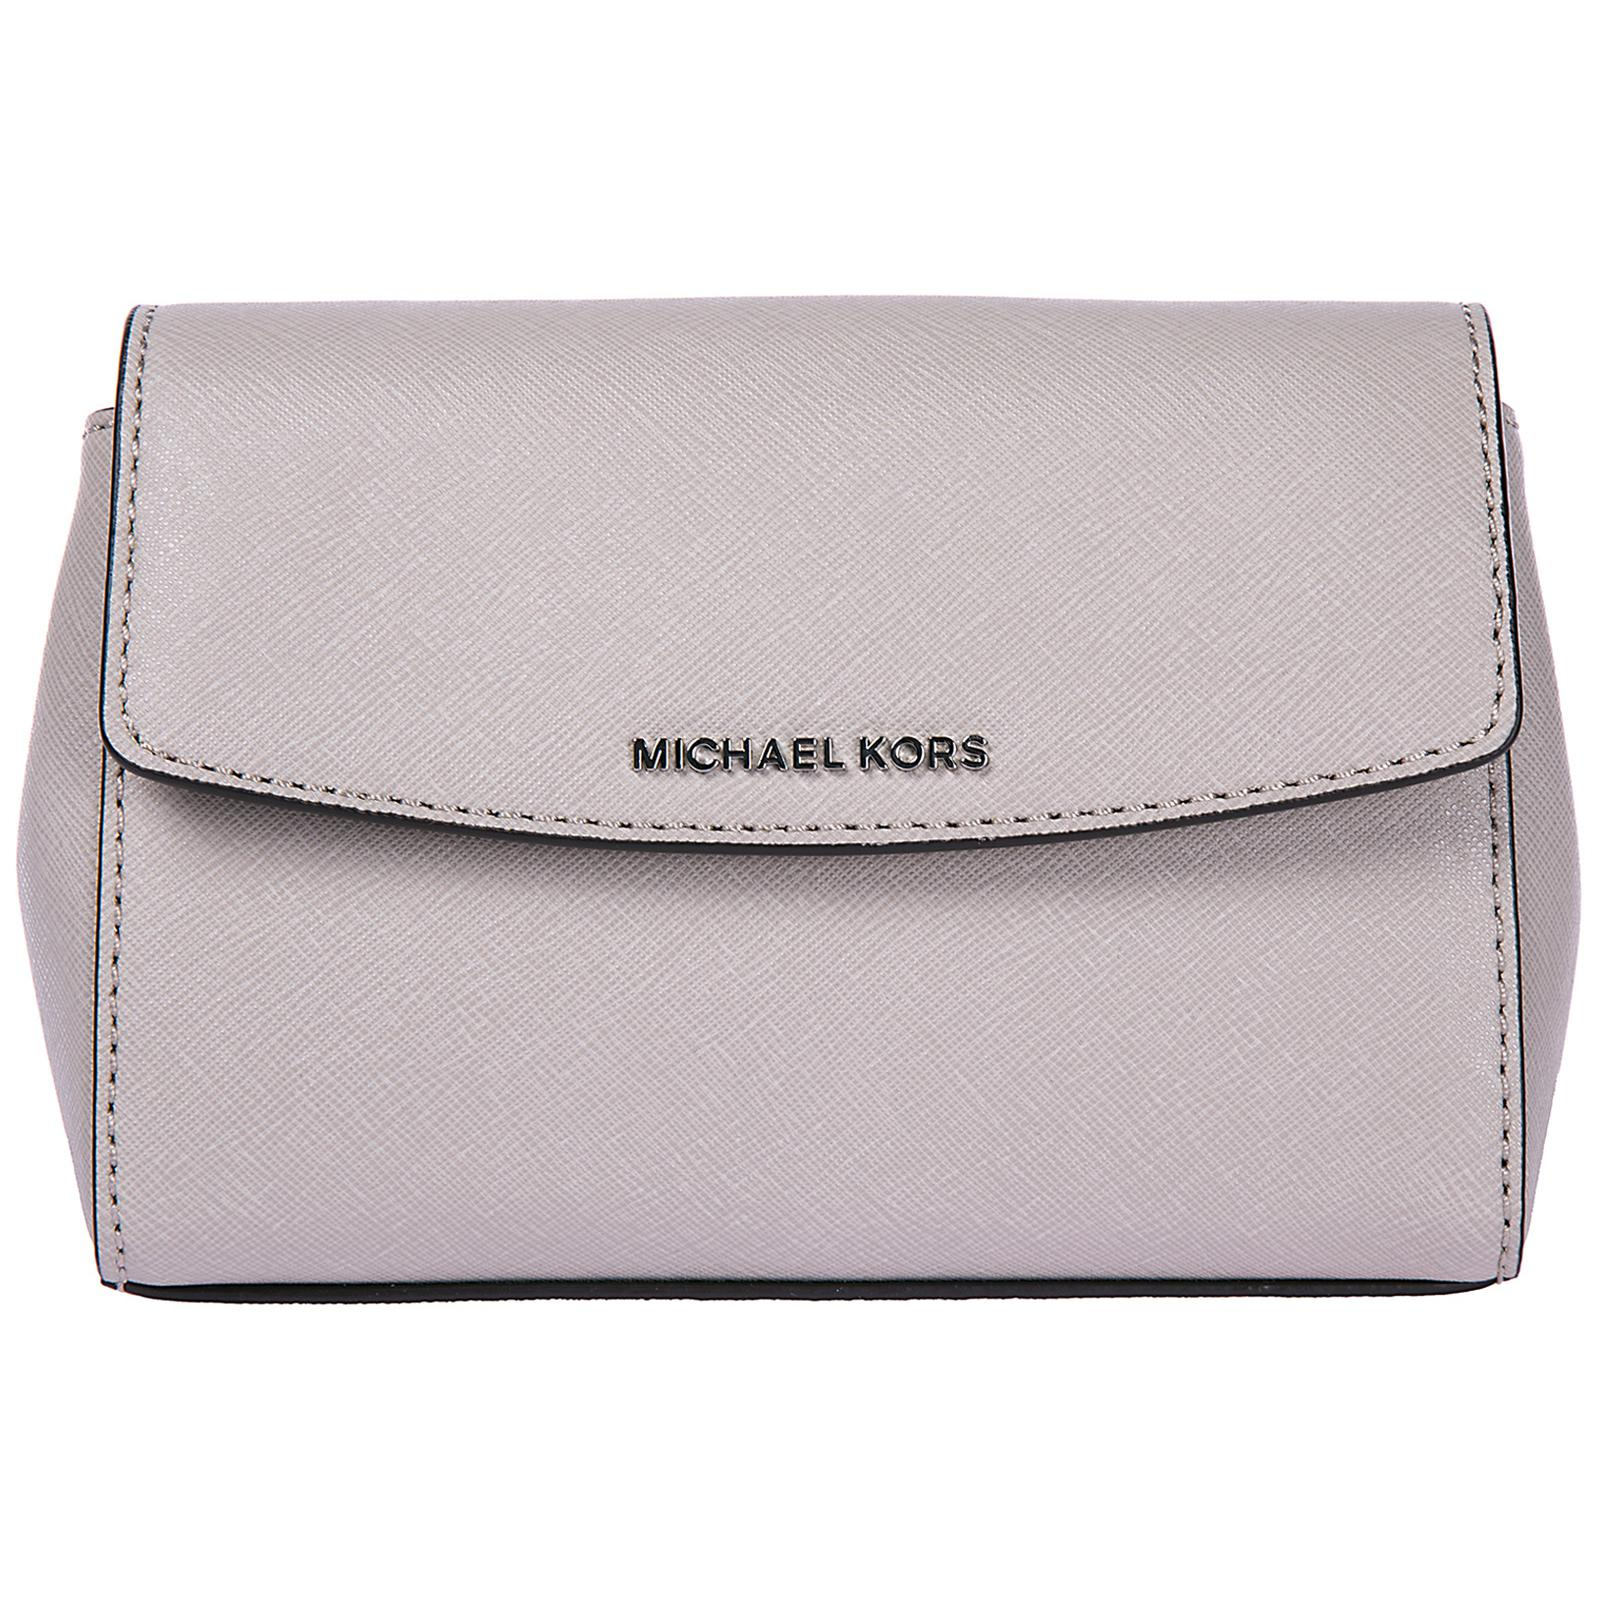 9a20ea71f3d8 Lyst - Michael Kors Leather Clutch Handbag Bag Purse Ava